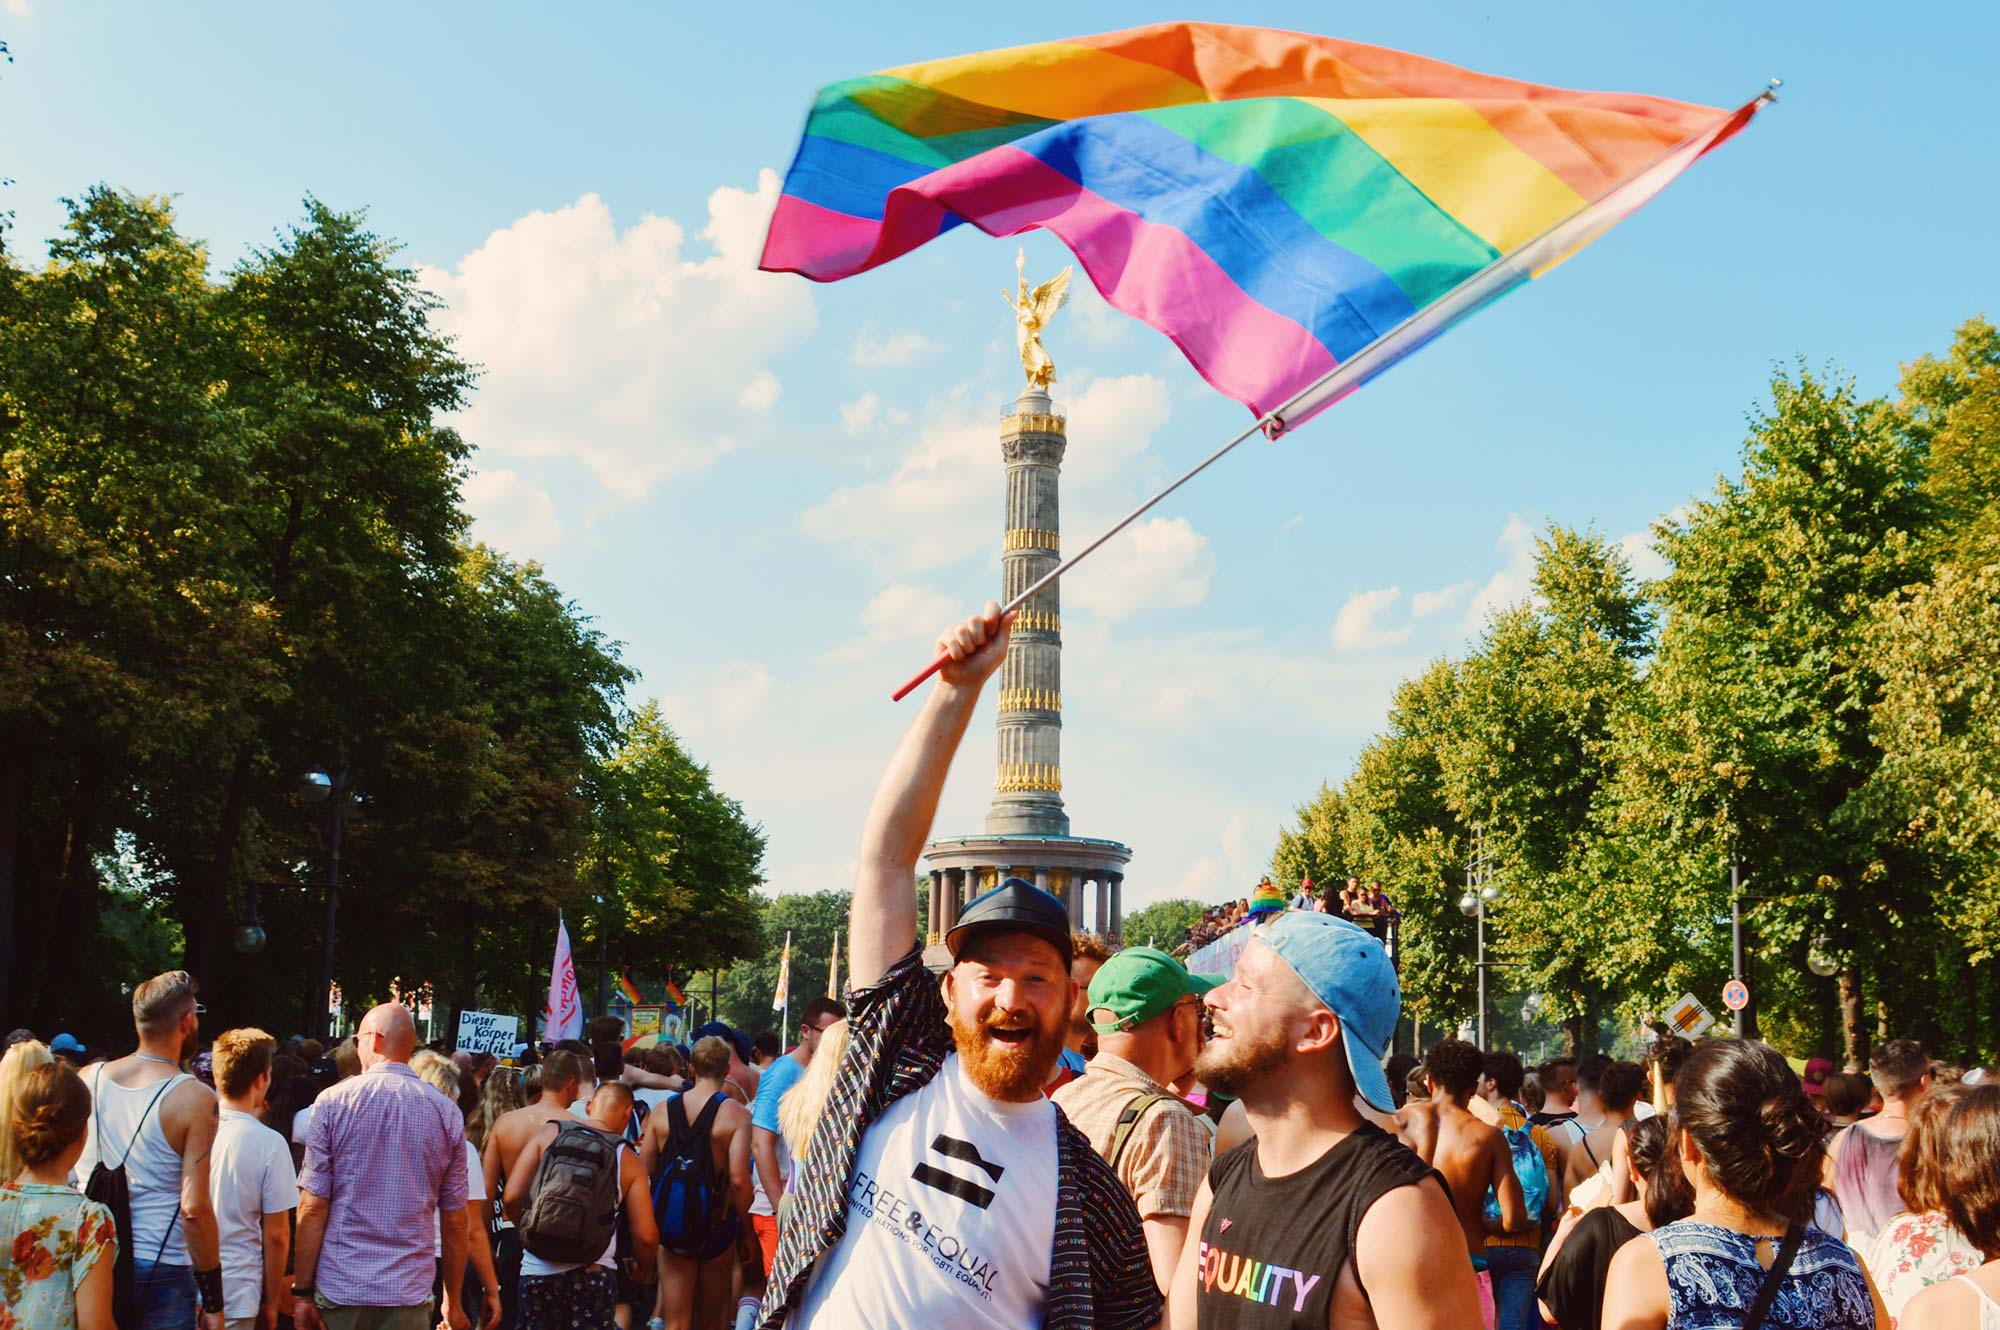 Regensburg Events Gay Pride Calendar Germany For 2019 Coupleofmen